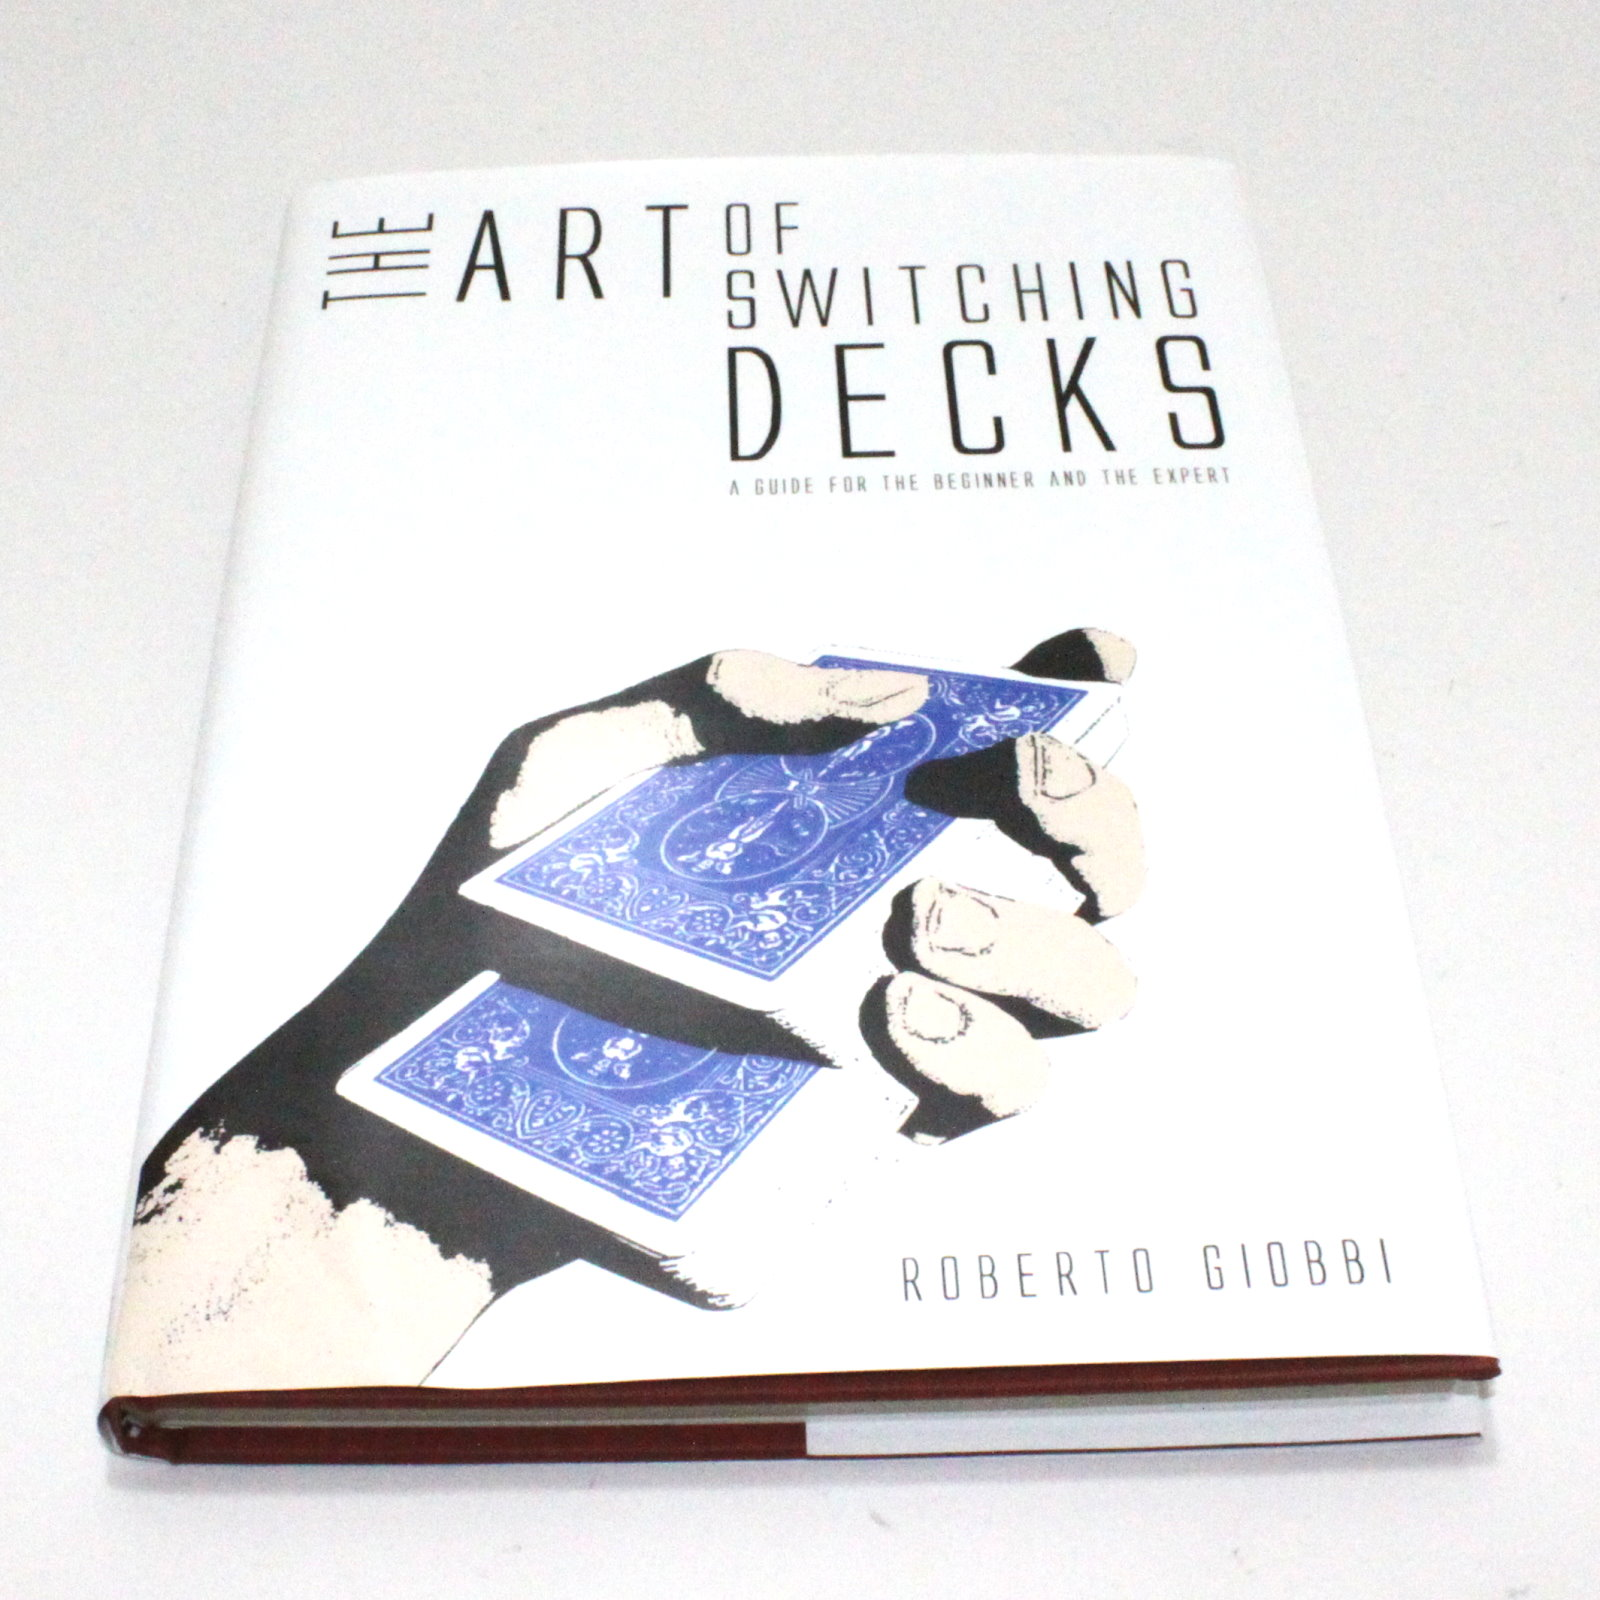 The Art of Switching Decks by Roberto Giobbi, Hermetic Press